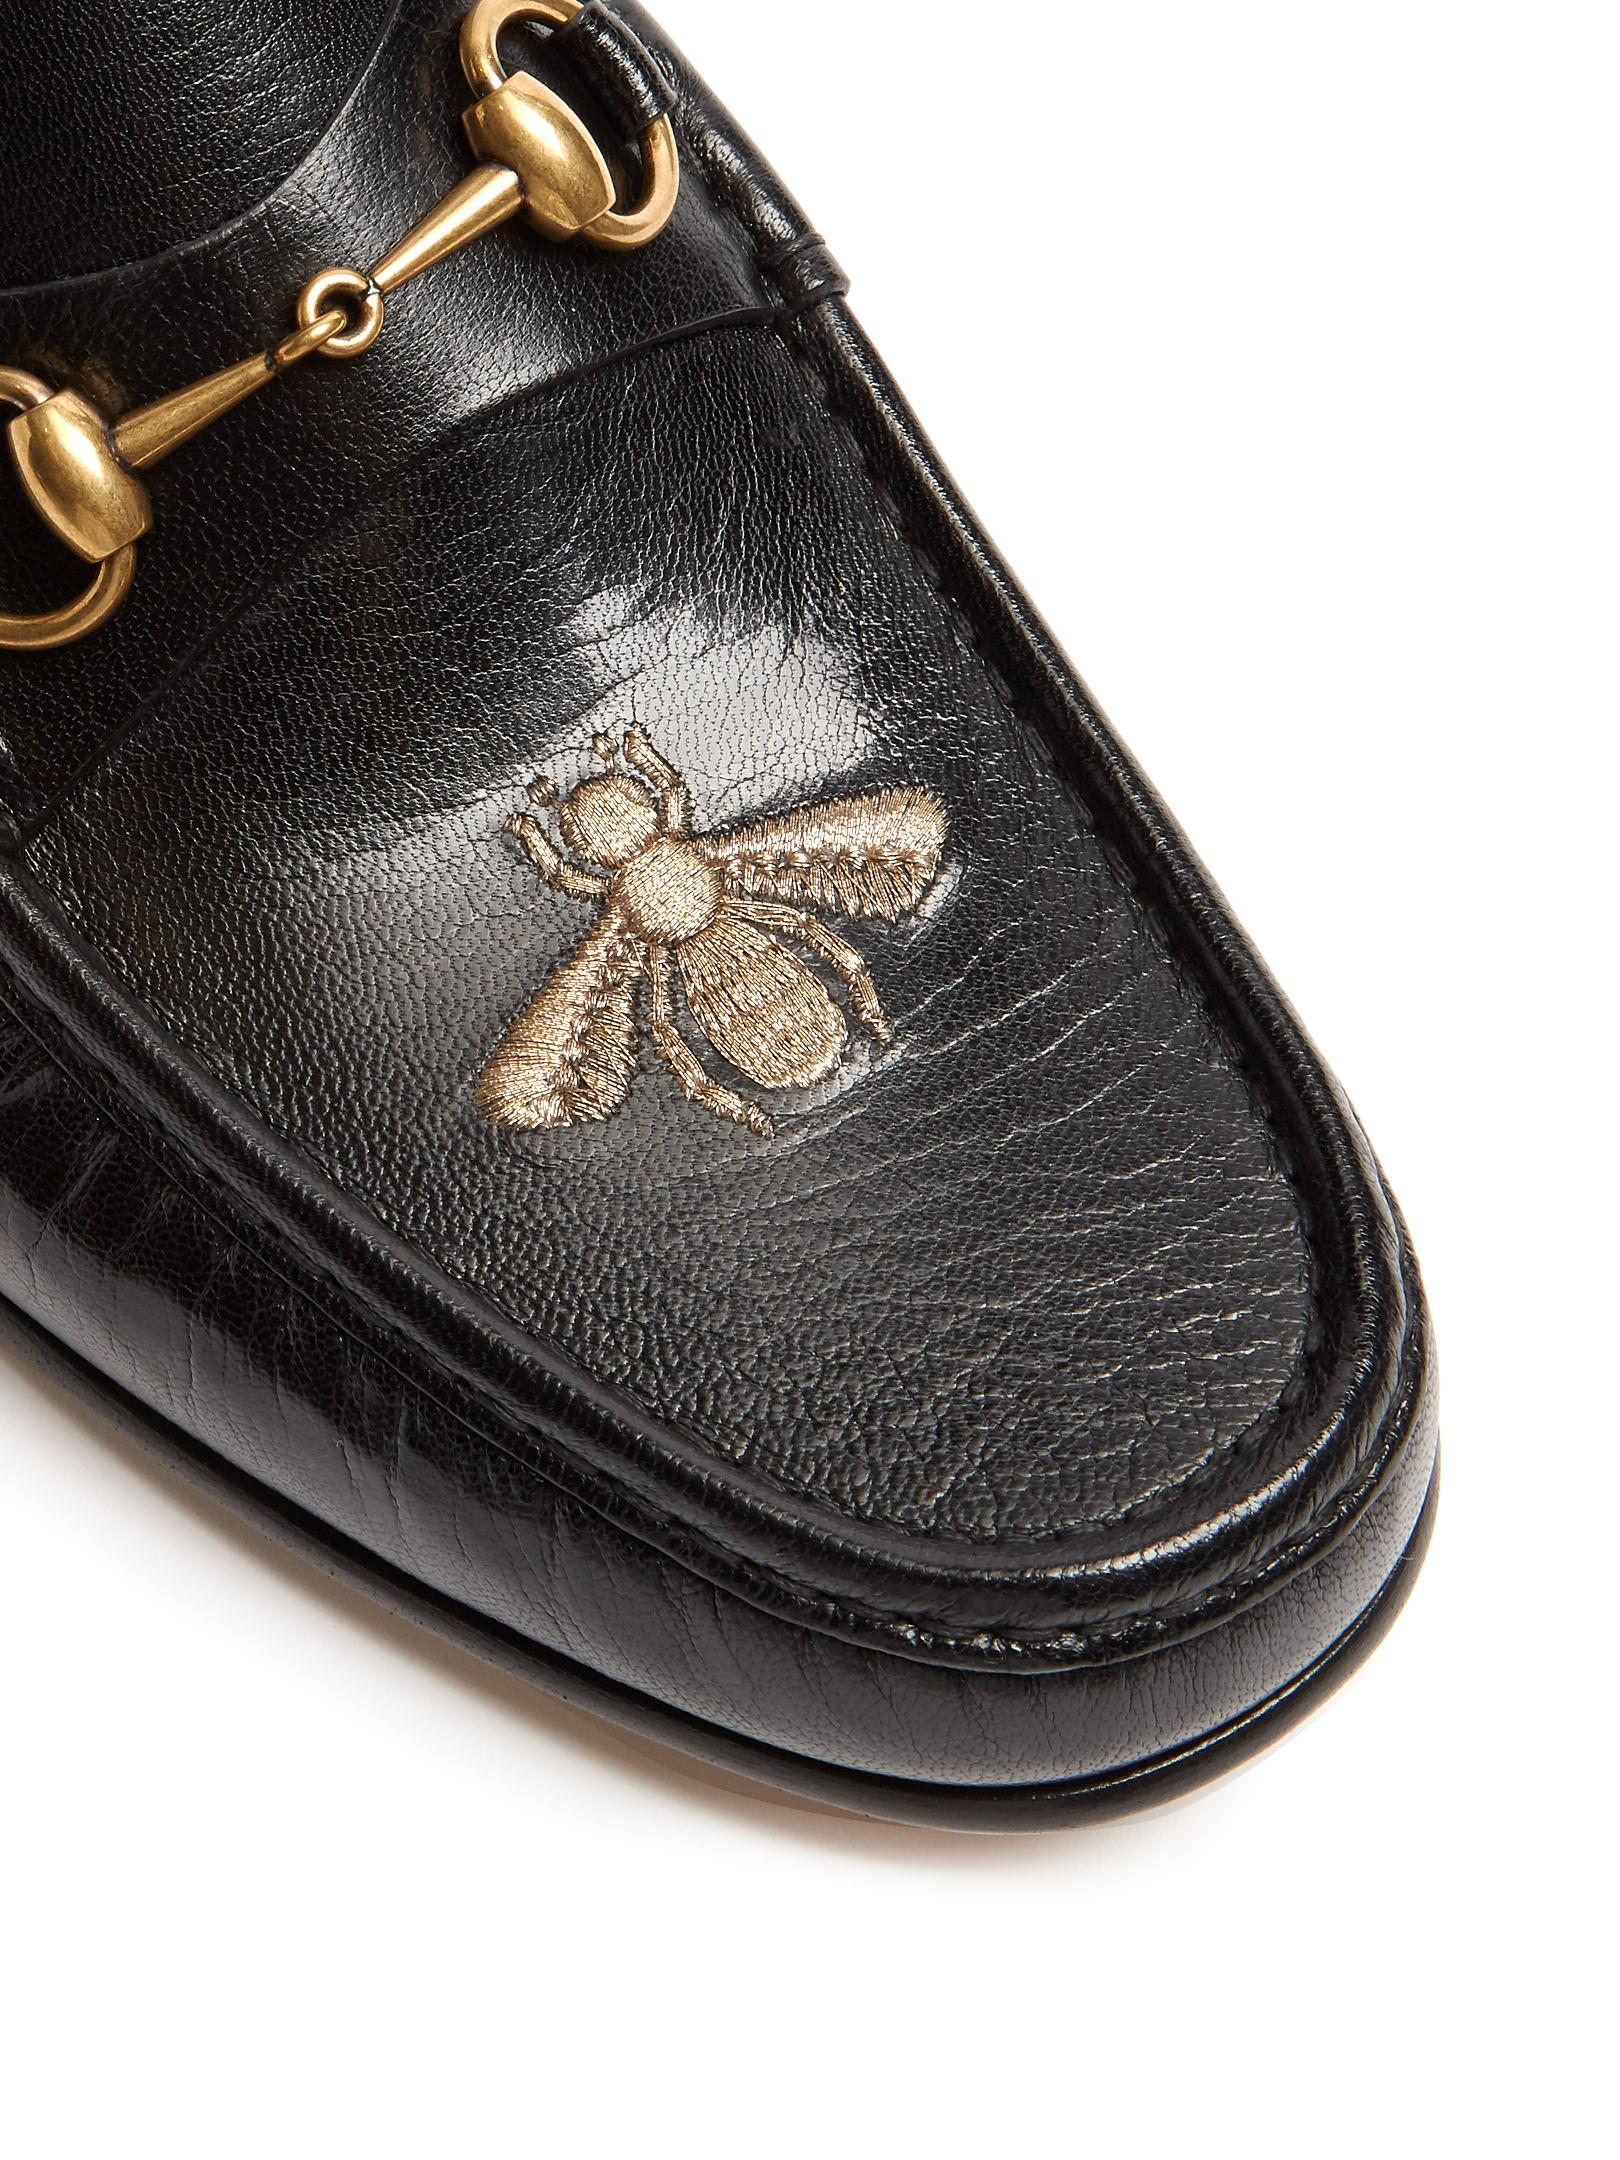 Gucci Roos Bee Embroidered Leather Loafers In Black For